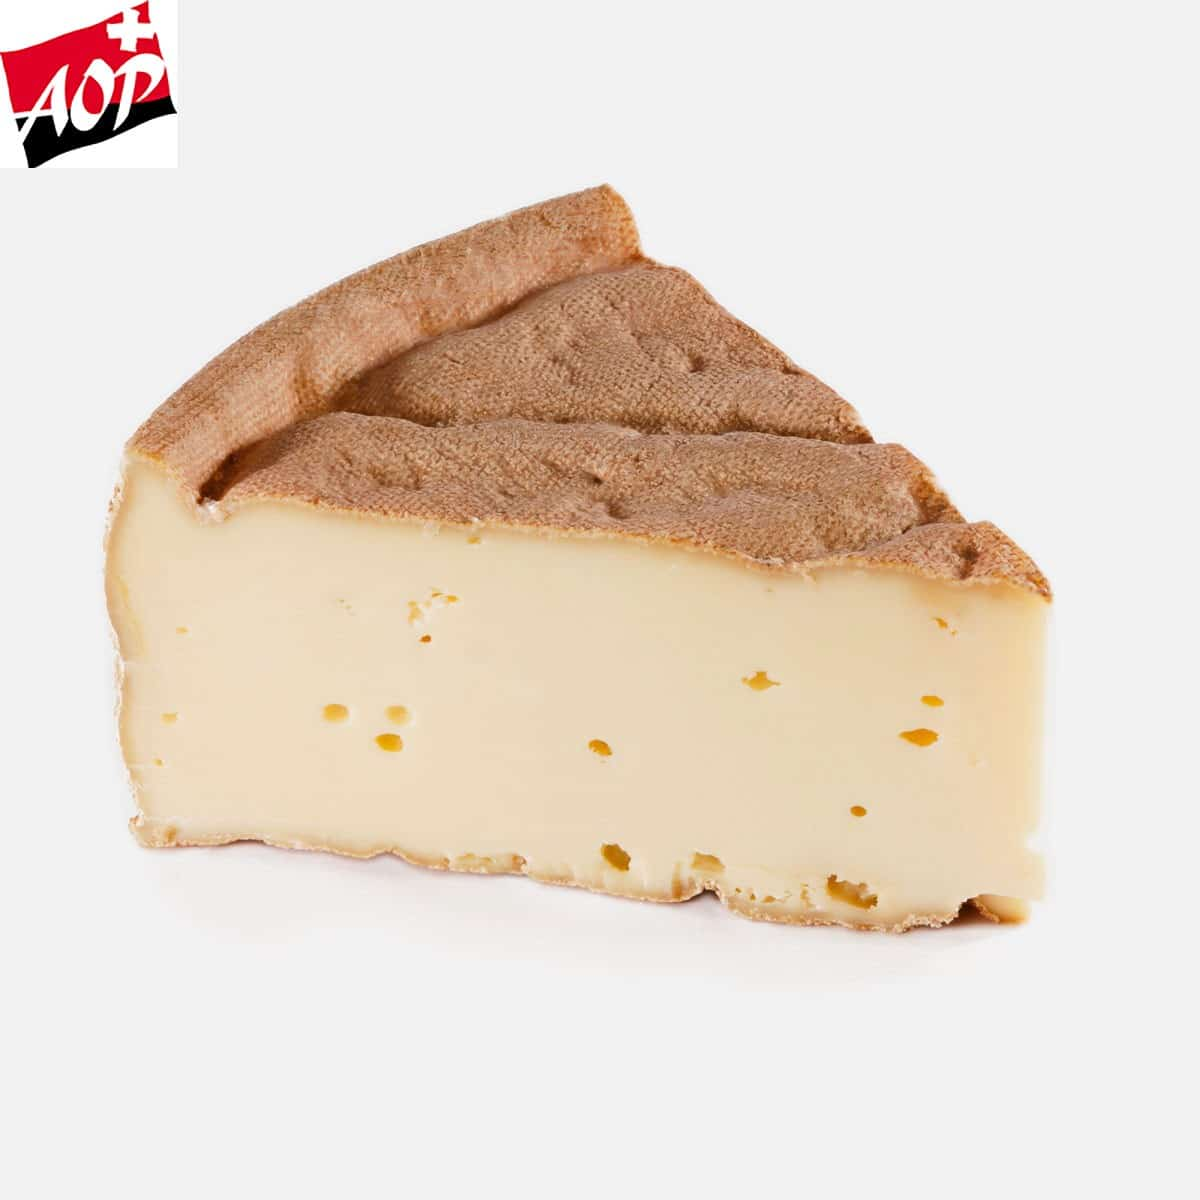 Vacherin Fribourgeois AOP CARACTERE 300g